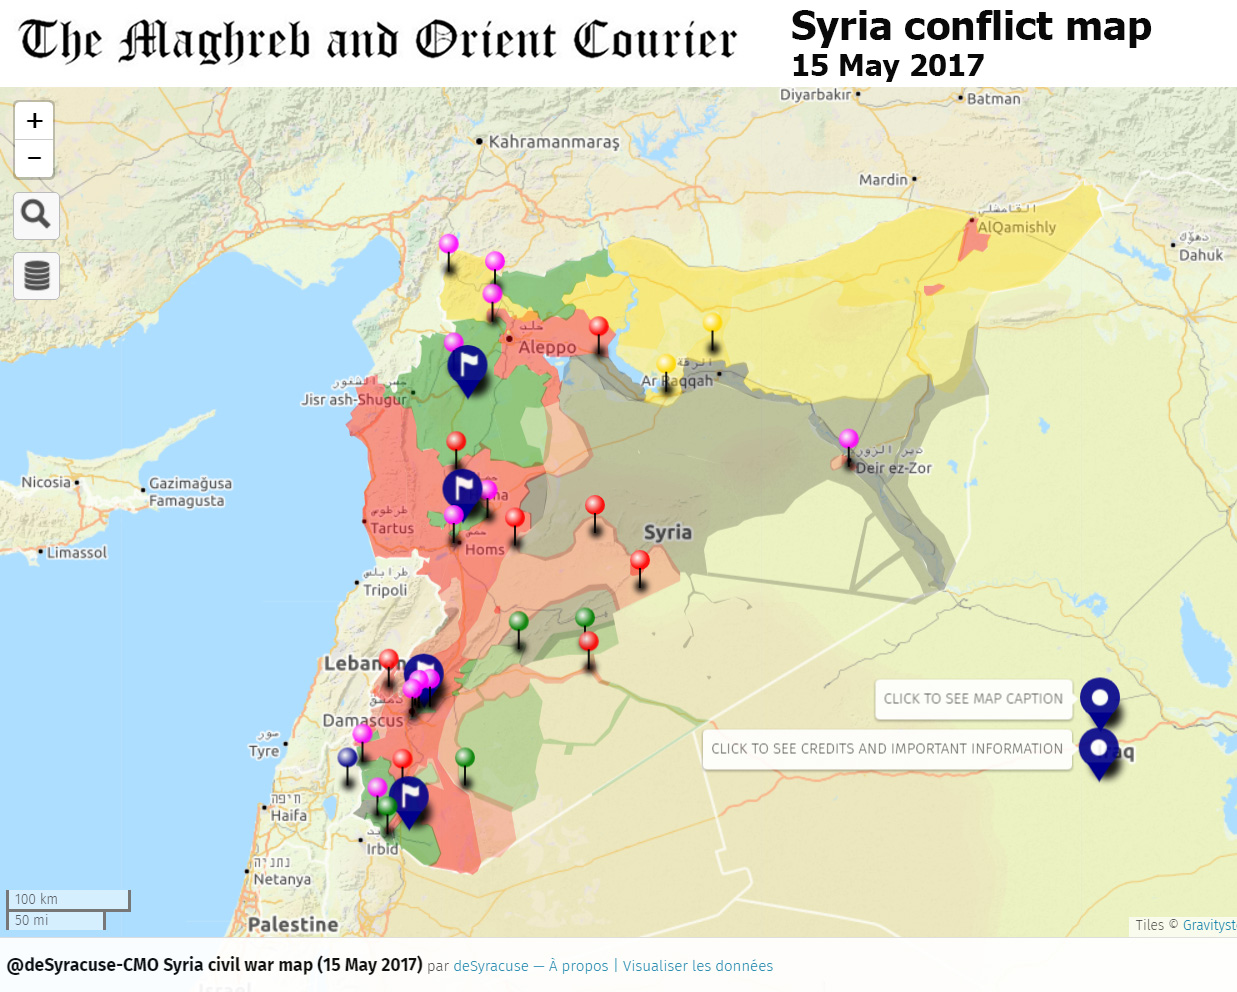 SYRIA - Interactive conflict map (on 15 May 2017) | The Maghreb and ...